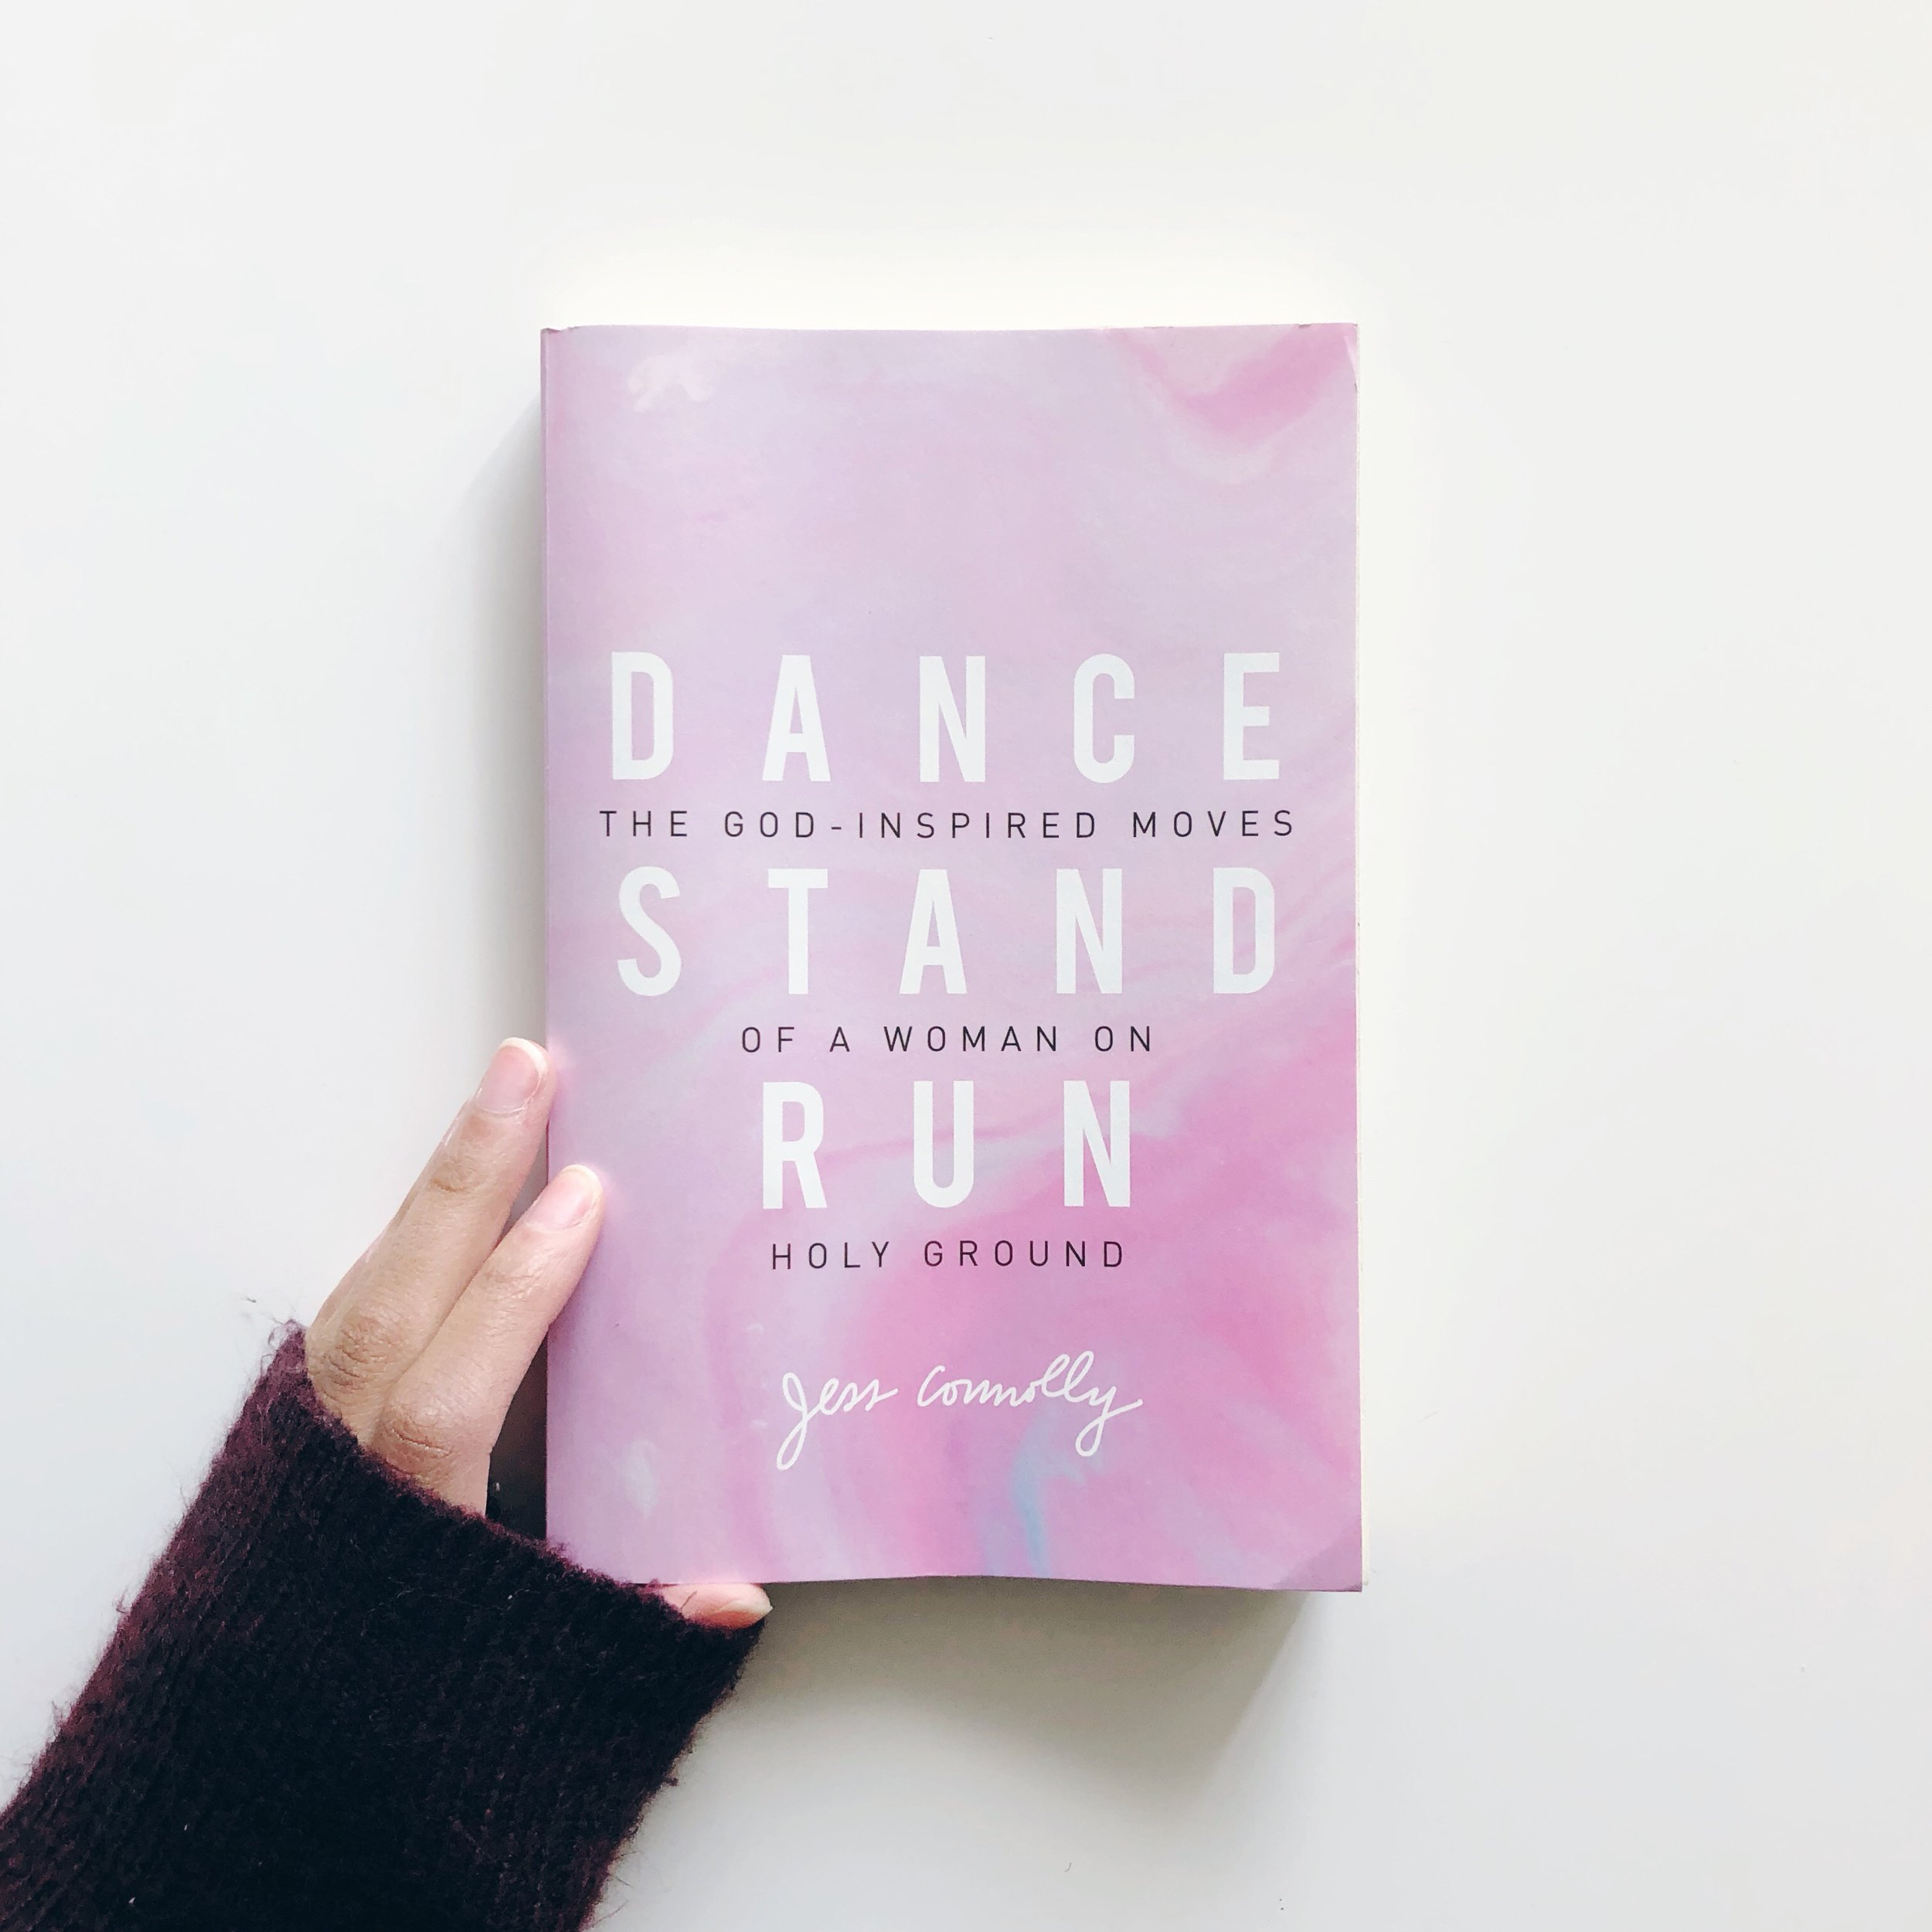 Dance Stand Run  was so much more than I expected. I thought, to be honest, it would be all about living free and letting loose as a Christian woman. To some extent, it is. But not in the way or for the reasons I anticipated. Jess Connolly absolutely NAILS it with this as she accurately and clearly explains where grace and holiness collide. It is a beautiful book that I believe our culture NEEDS.  RUN AN GET THIS ONE . ASAP.